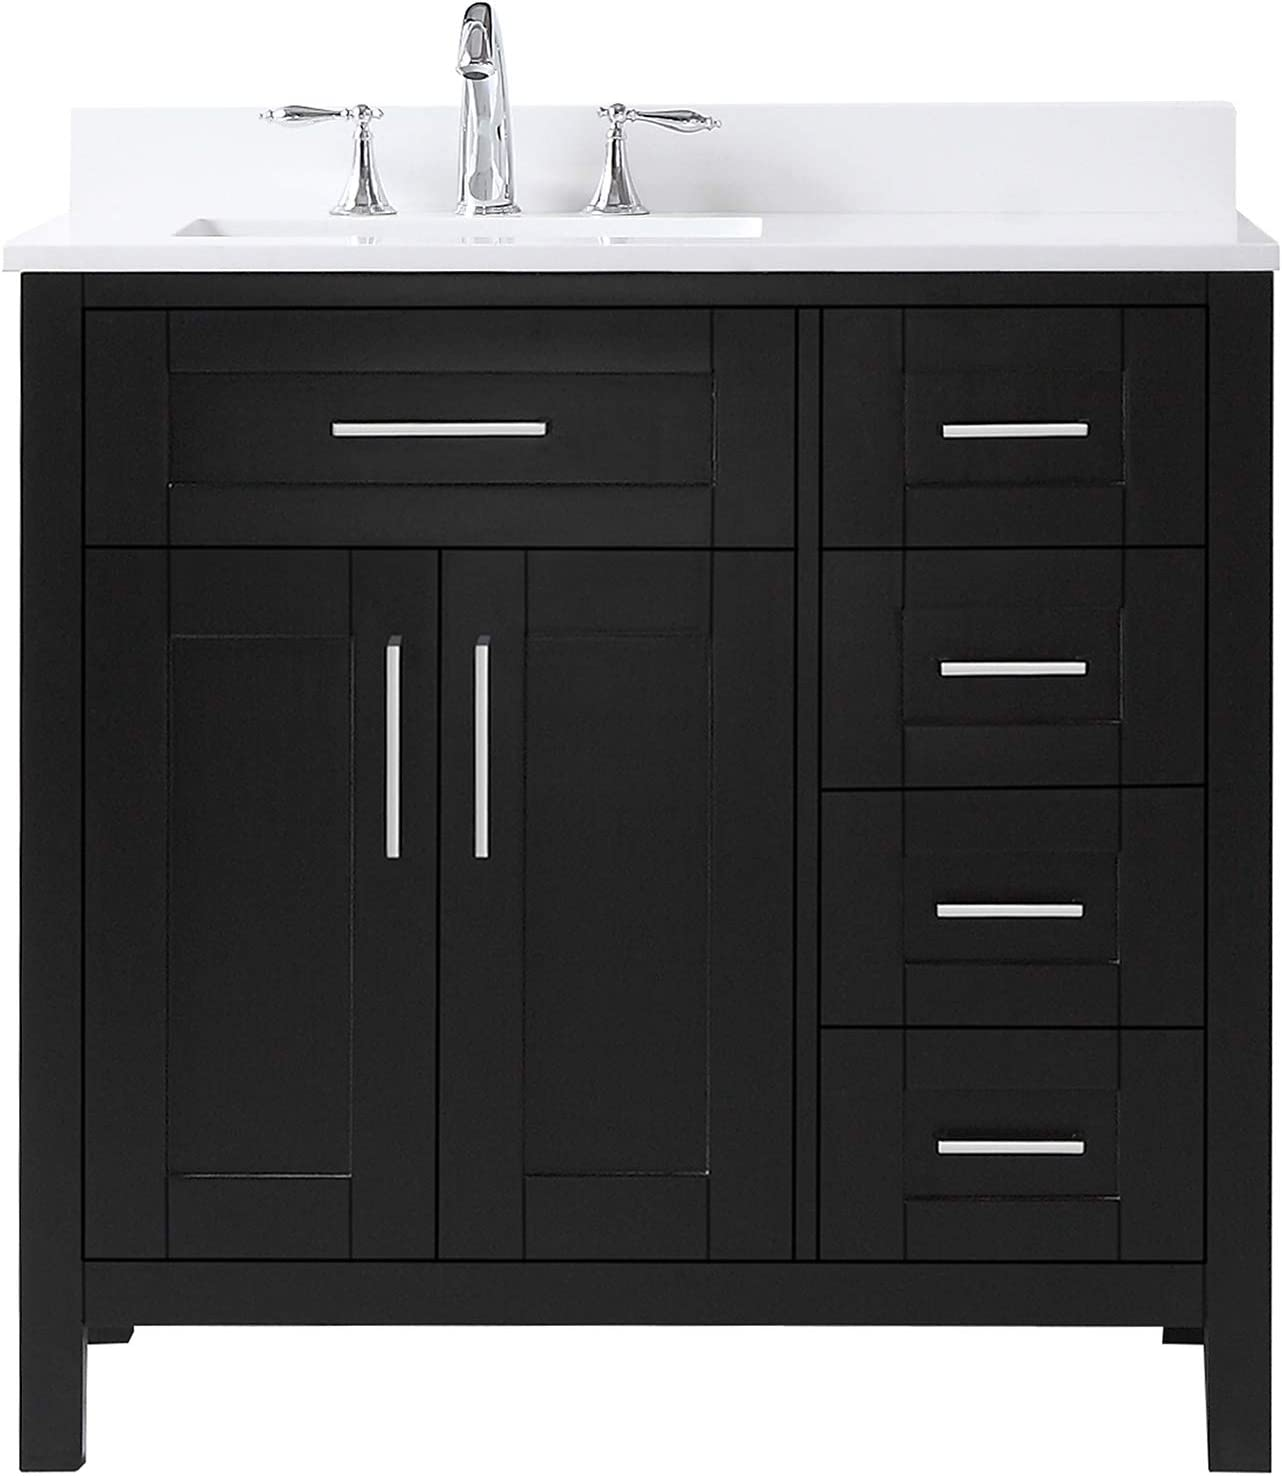 Ove Decors Maya 36 Set Bathroom Vanity Freestanding Cabinet, 36 inches, Espresso with White Cultured Marble Countertop